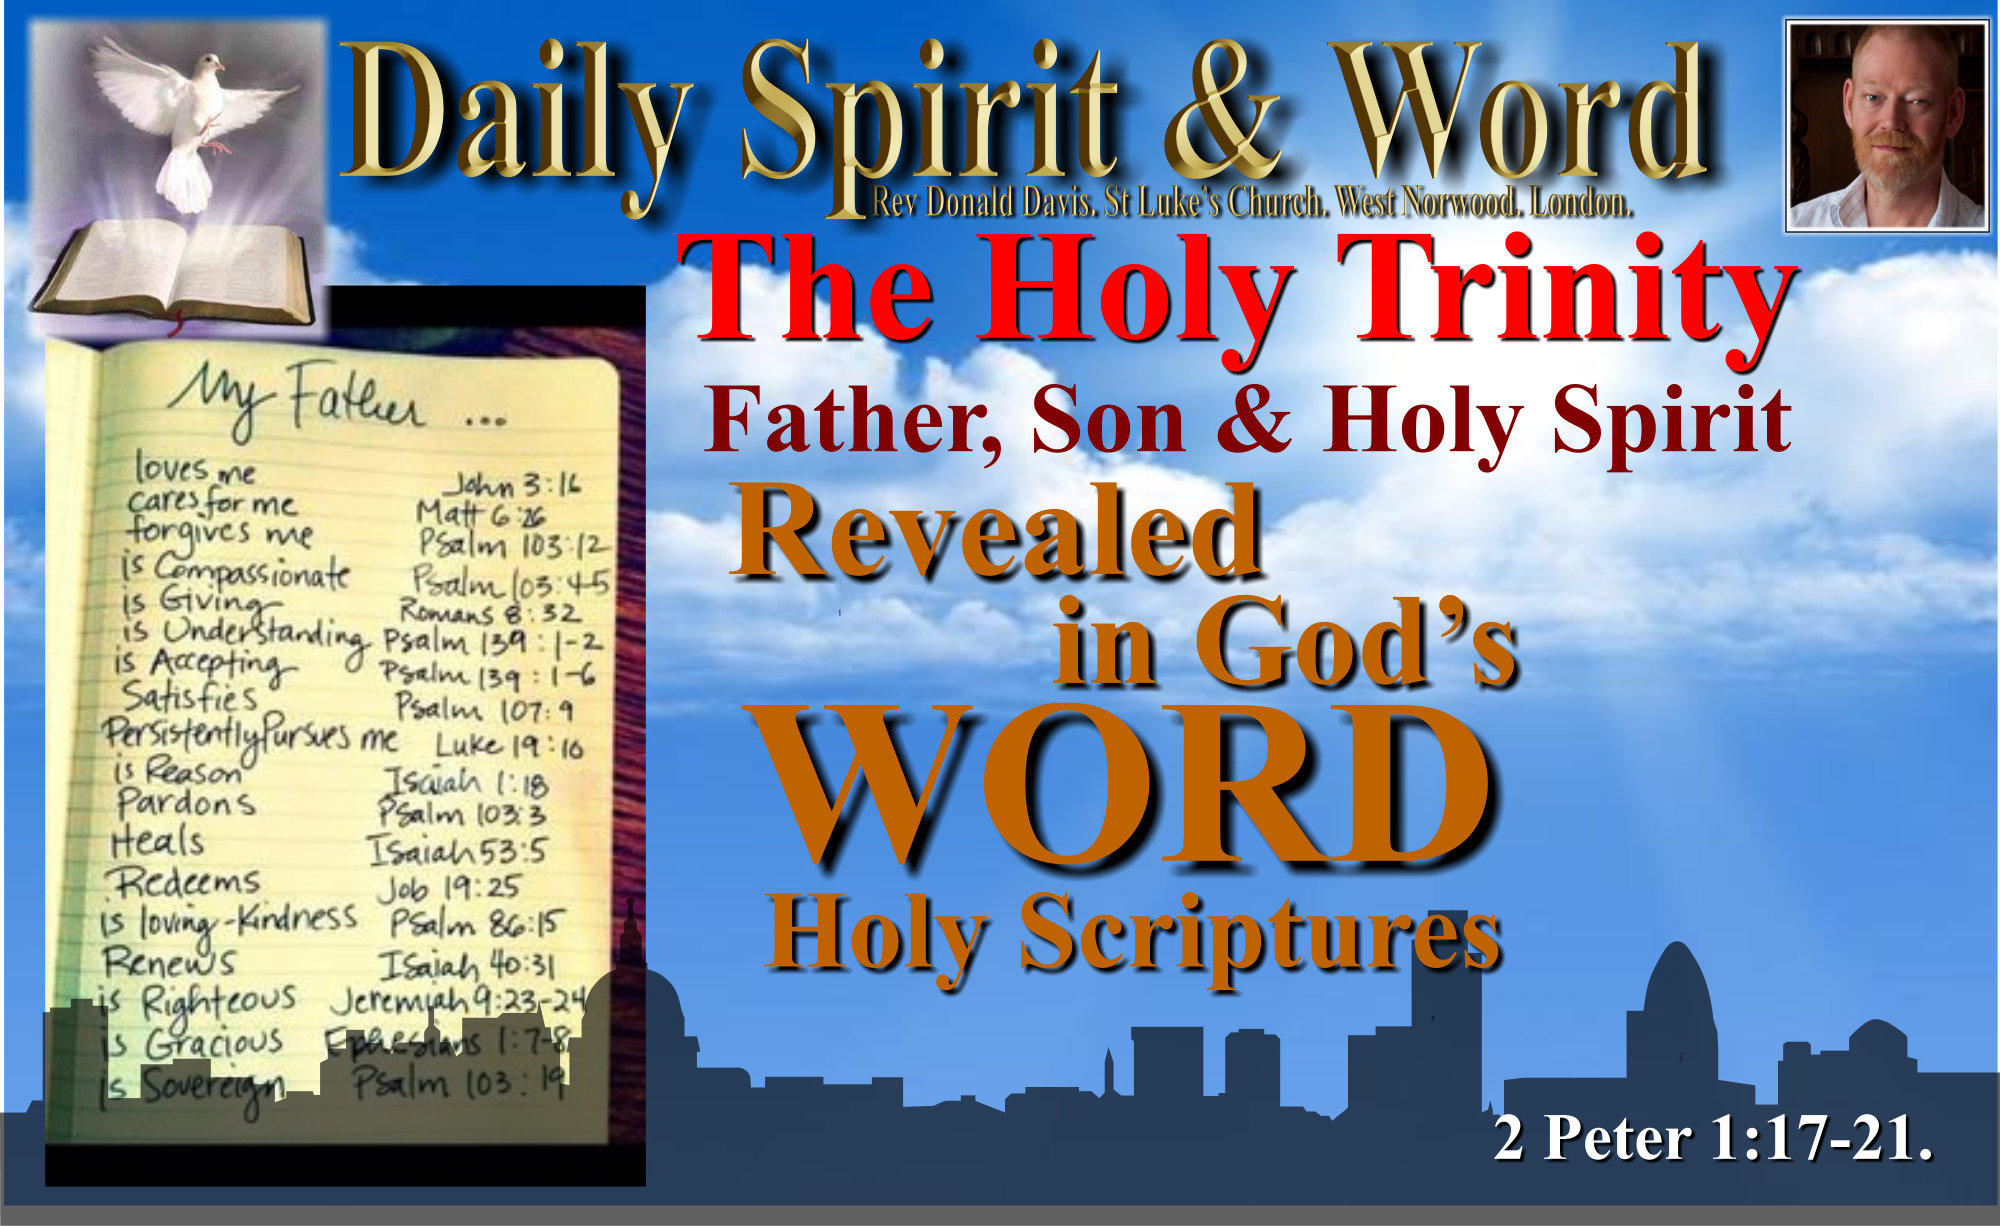 God is; Father, Son and Holy Spirit